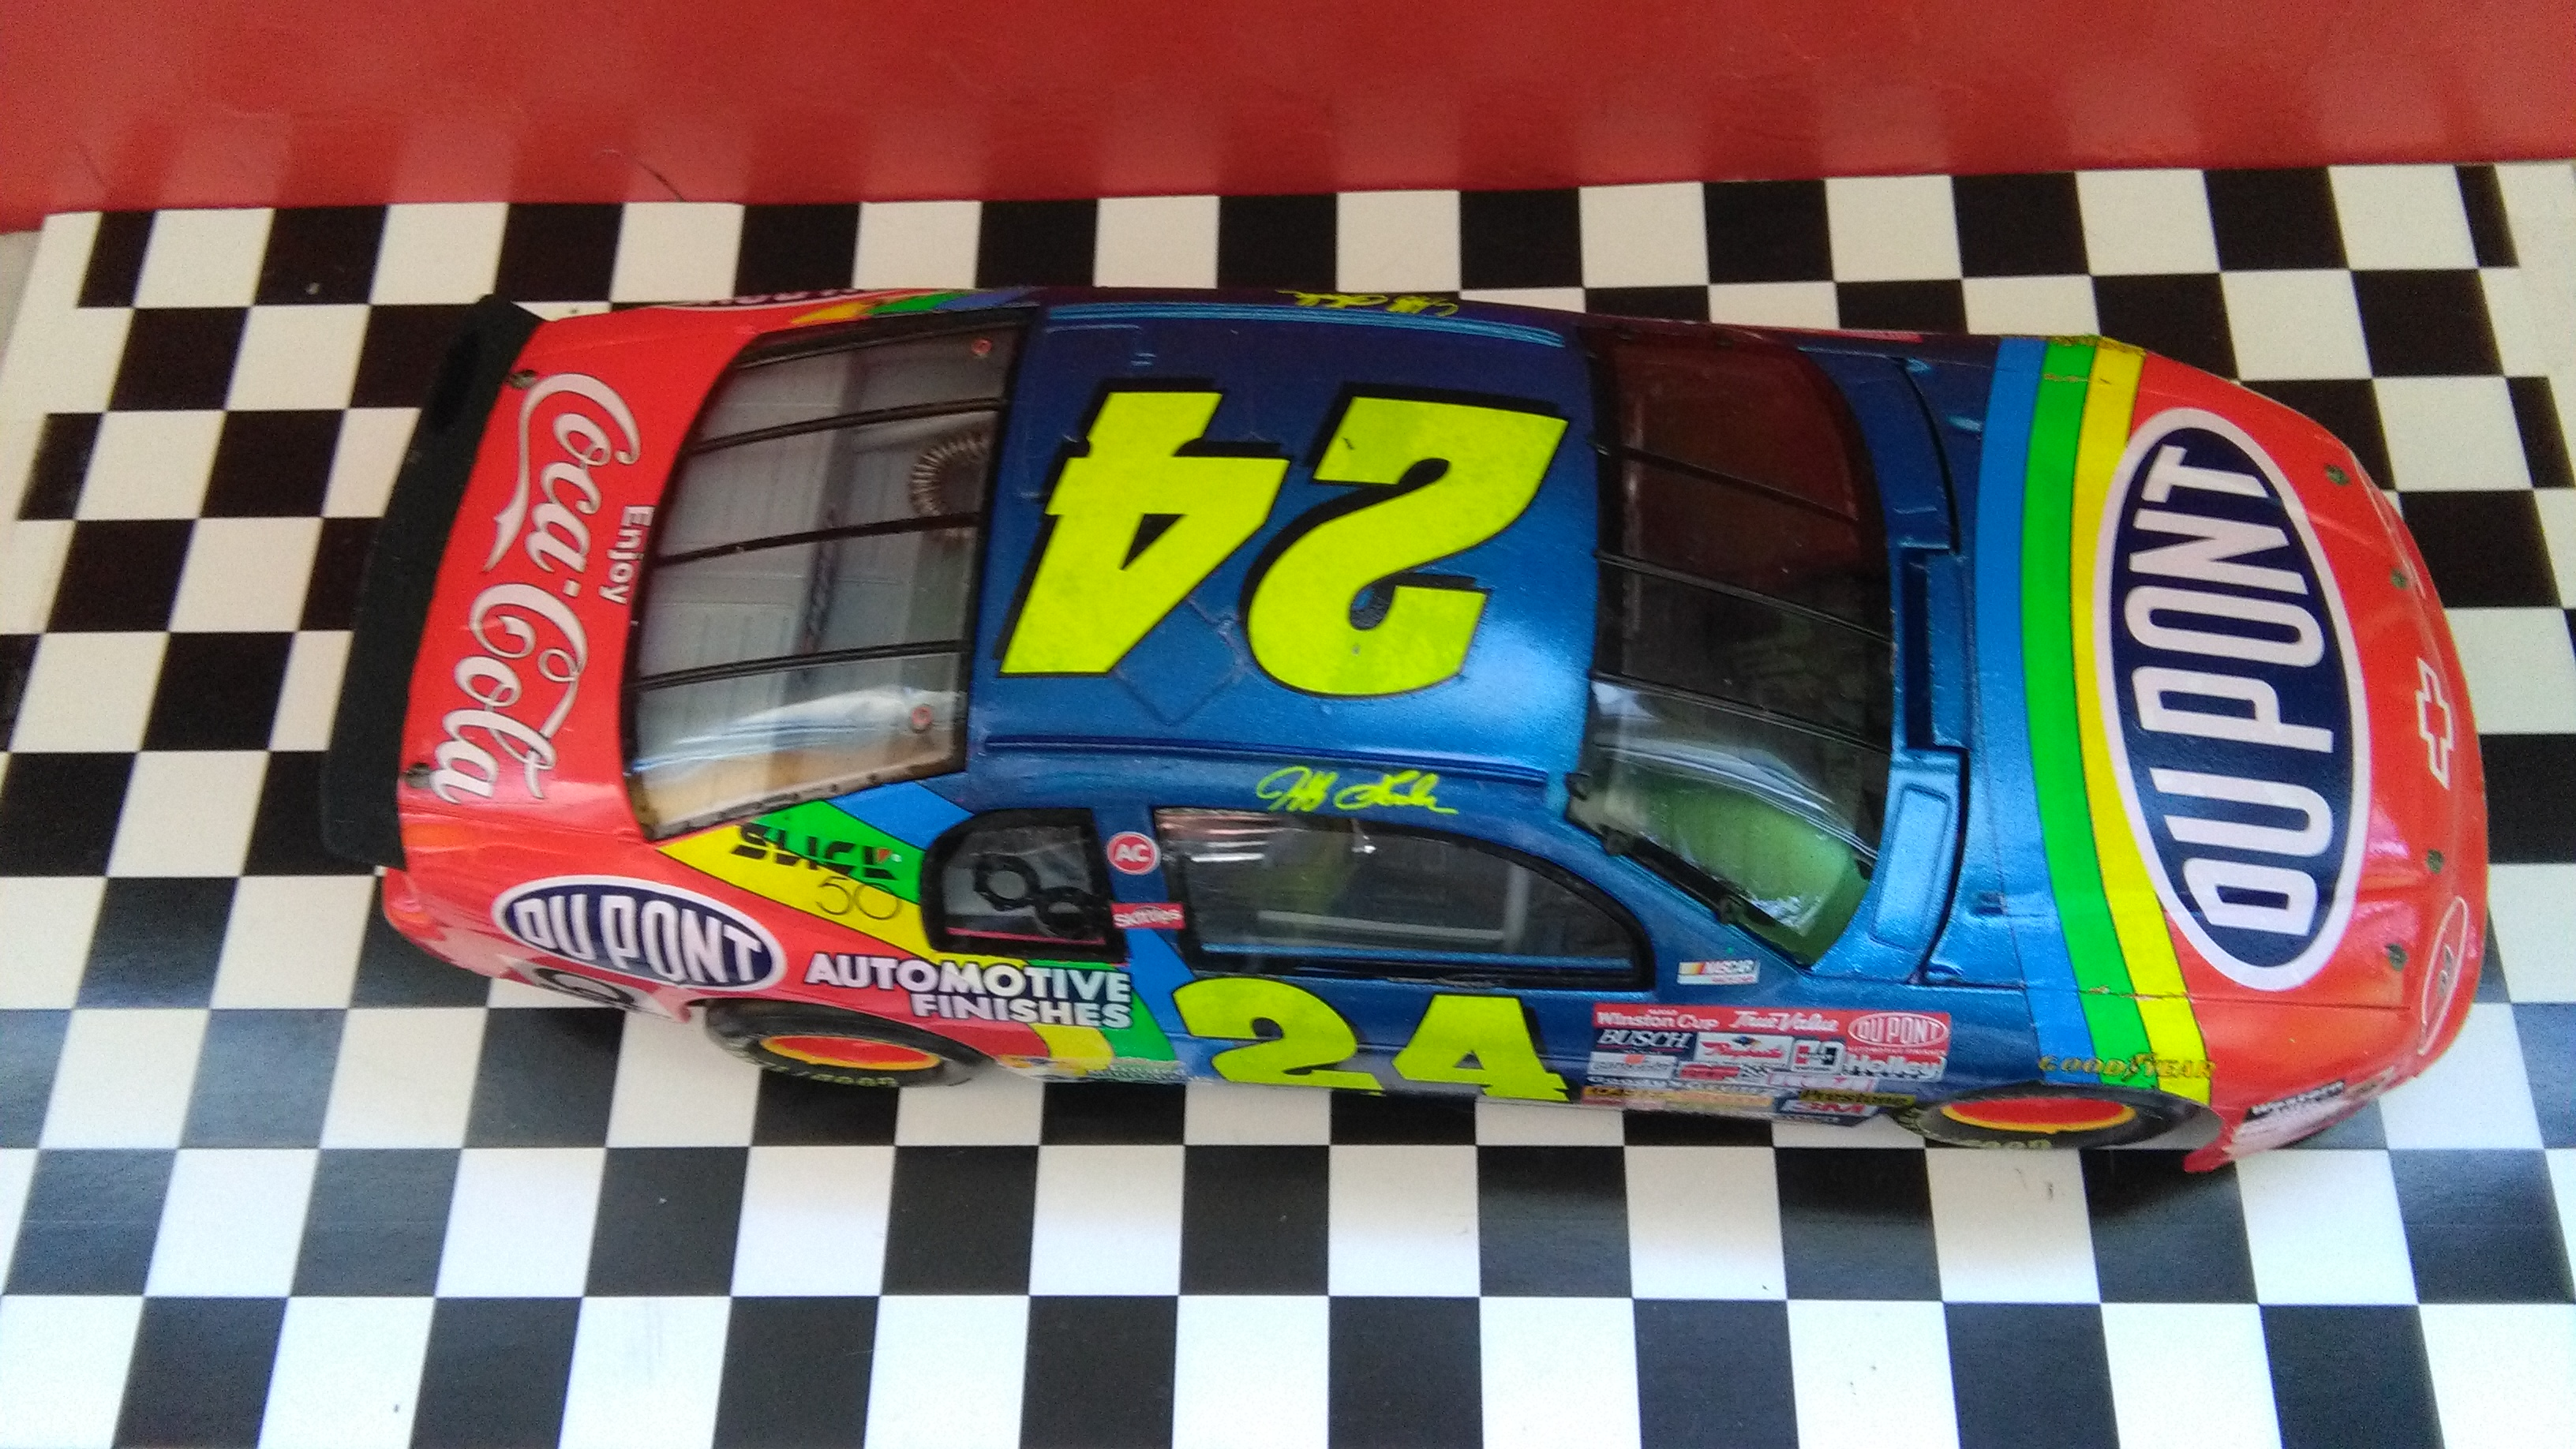 Chevy Monte-Carlo 1996 #24 Jeff Gordon Dupont Dover wins  116374IMG20170521140653